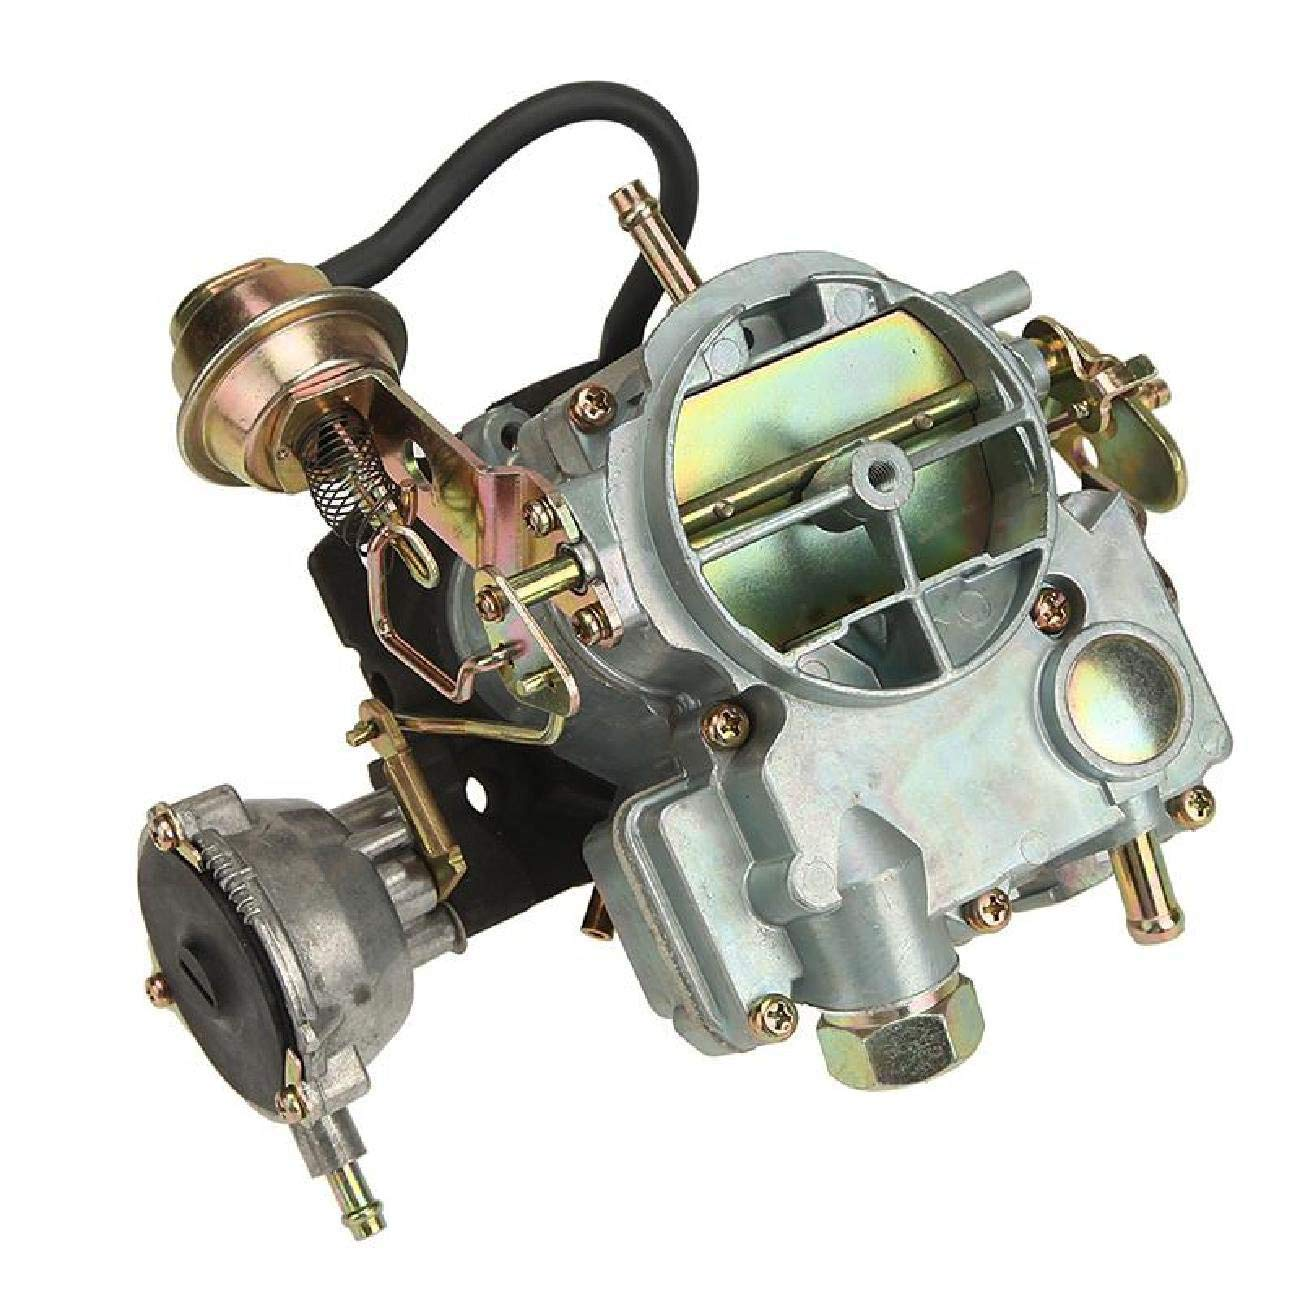 2. ALAVENTE 2 BARREL Carburetor